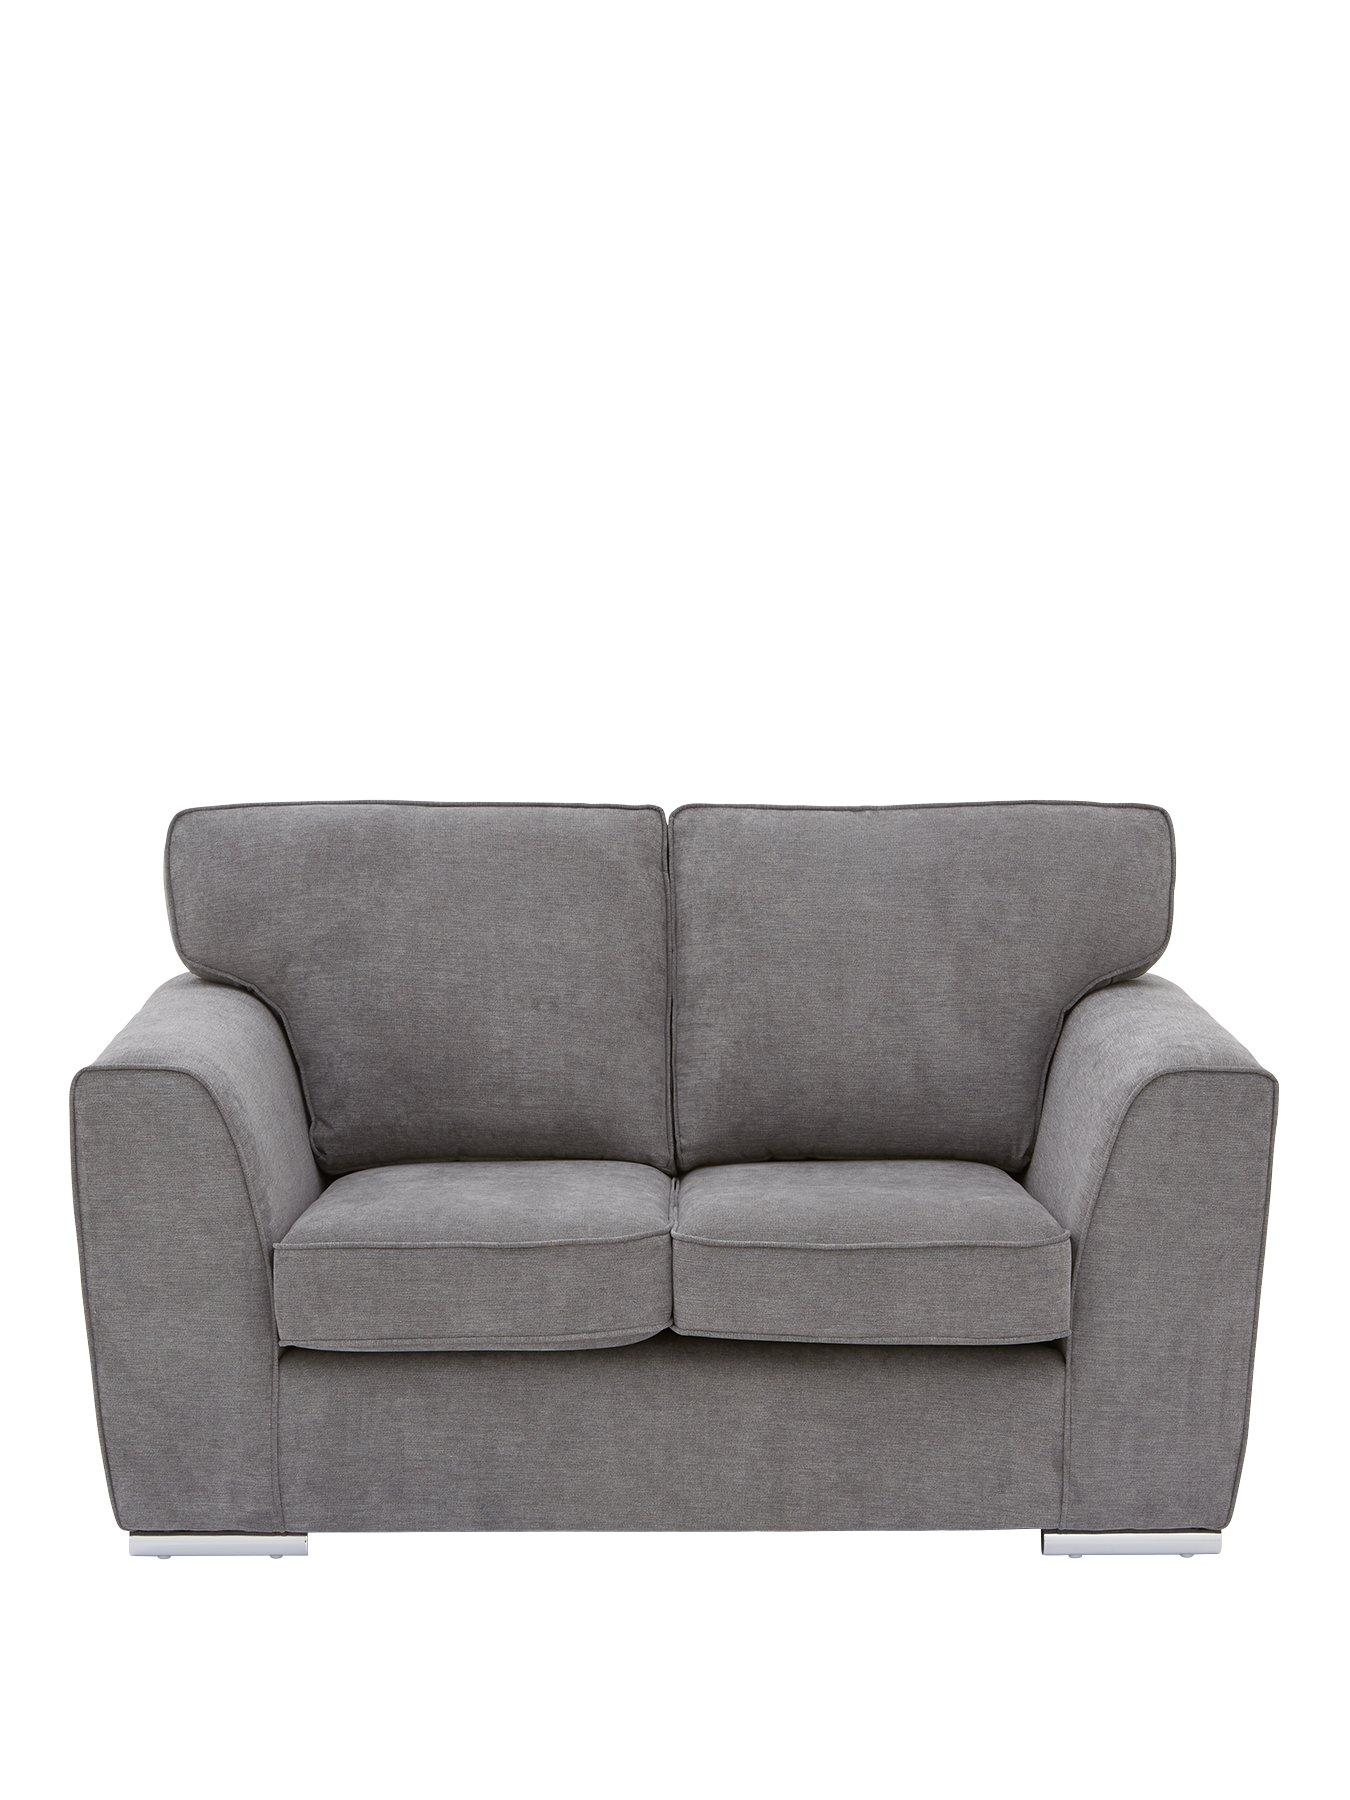 grey fabric sofa next sets for living room in bangalore sofas 2 3 4 5 seater very co uk martine